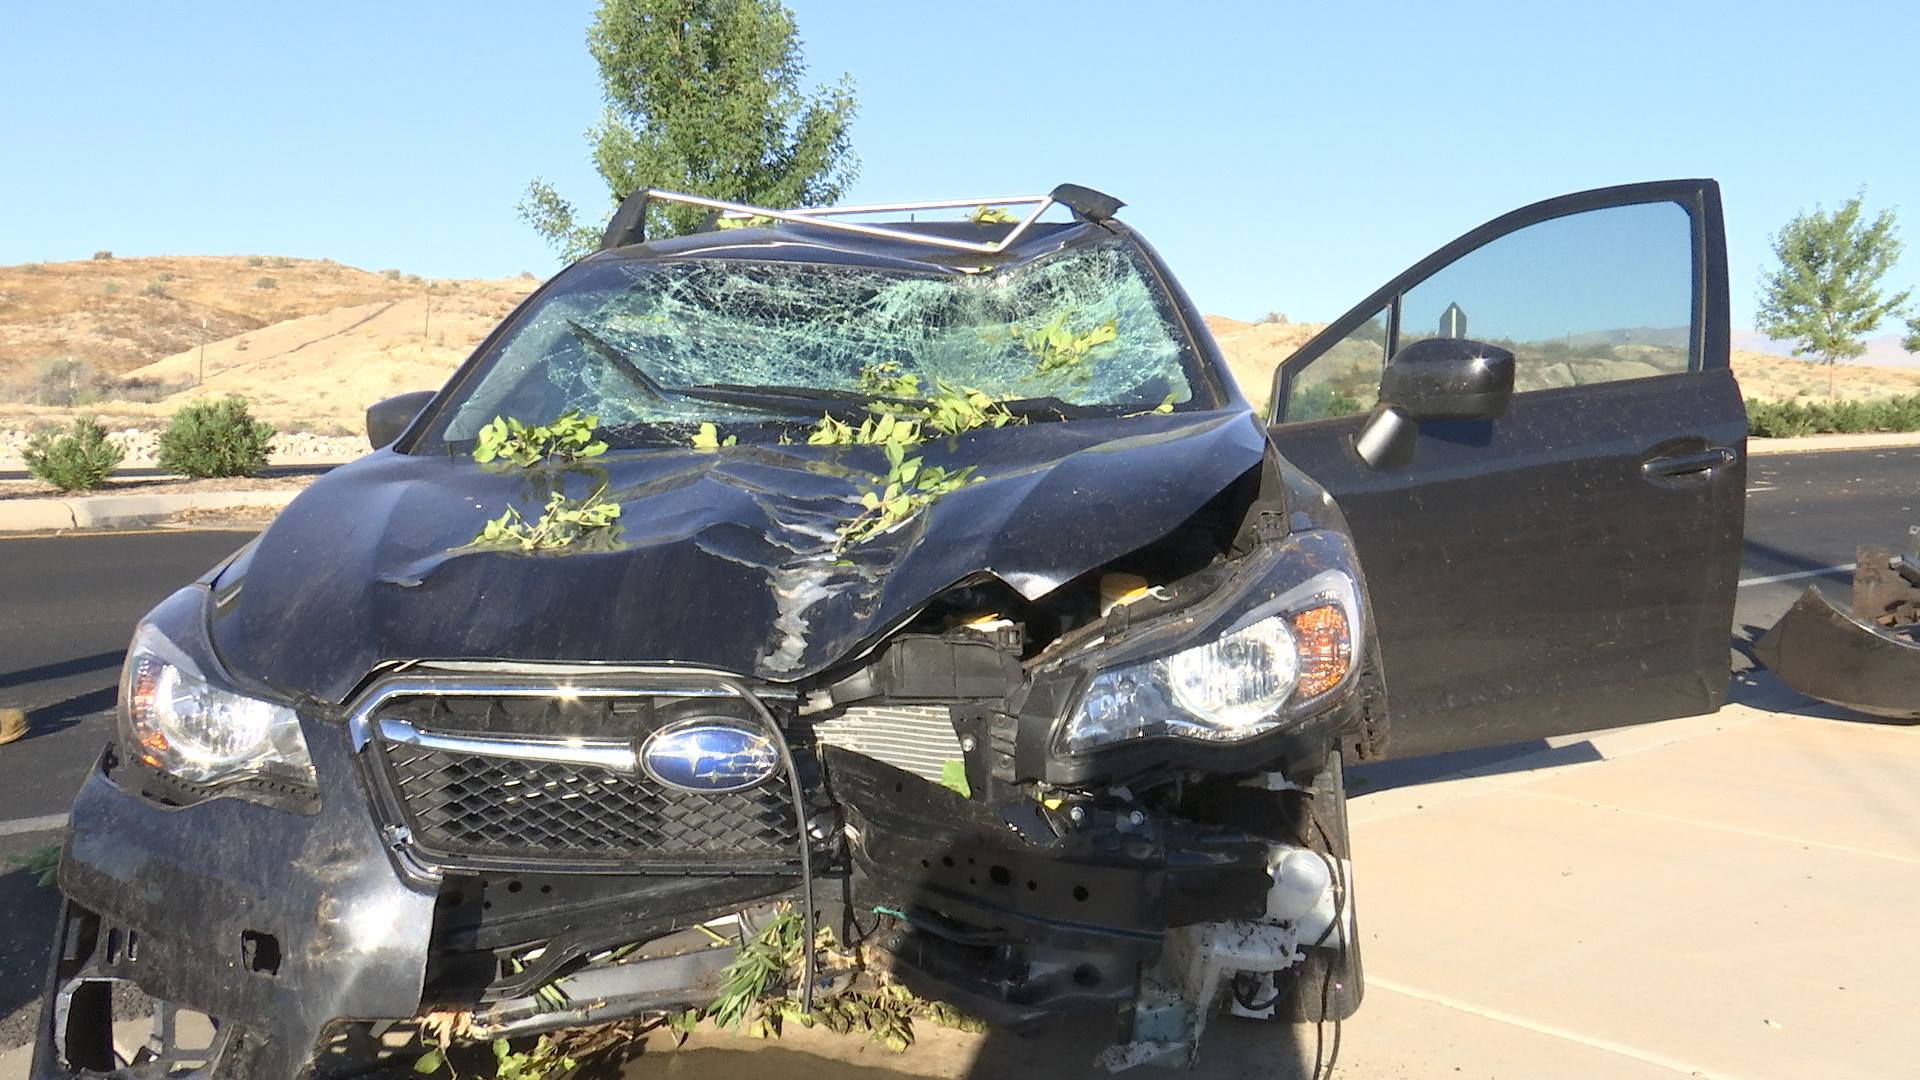 A juvenile driver lost control of his Subaru on Brigham Road, crashing through the center median and taking out several trees before coming to rest in the opposite lanes, St. George, Utah, July 23, 2016 | Photo by Sheldon Demke, St. George News